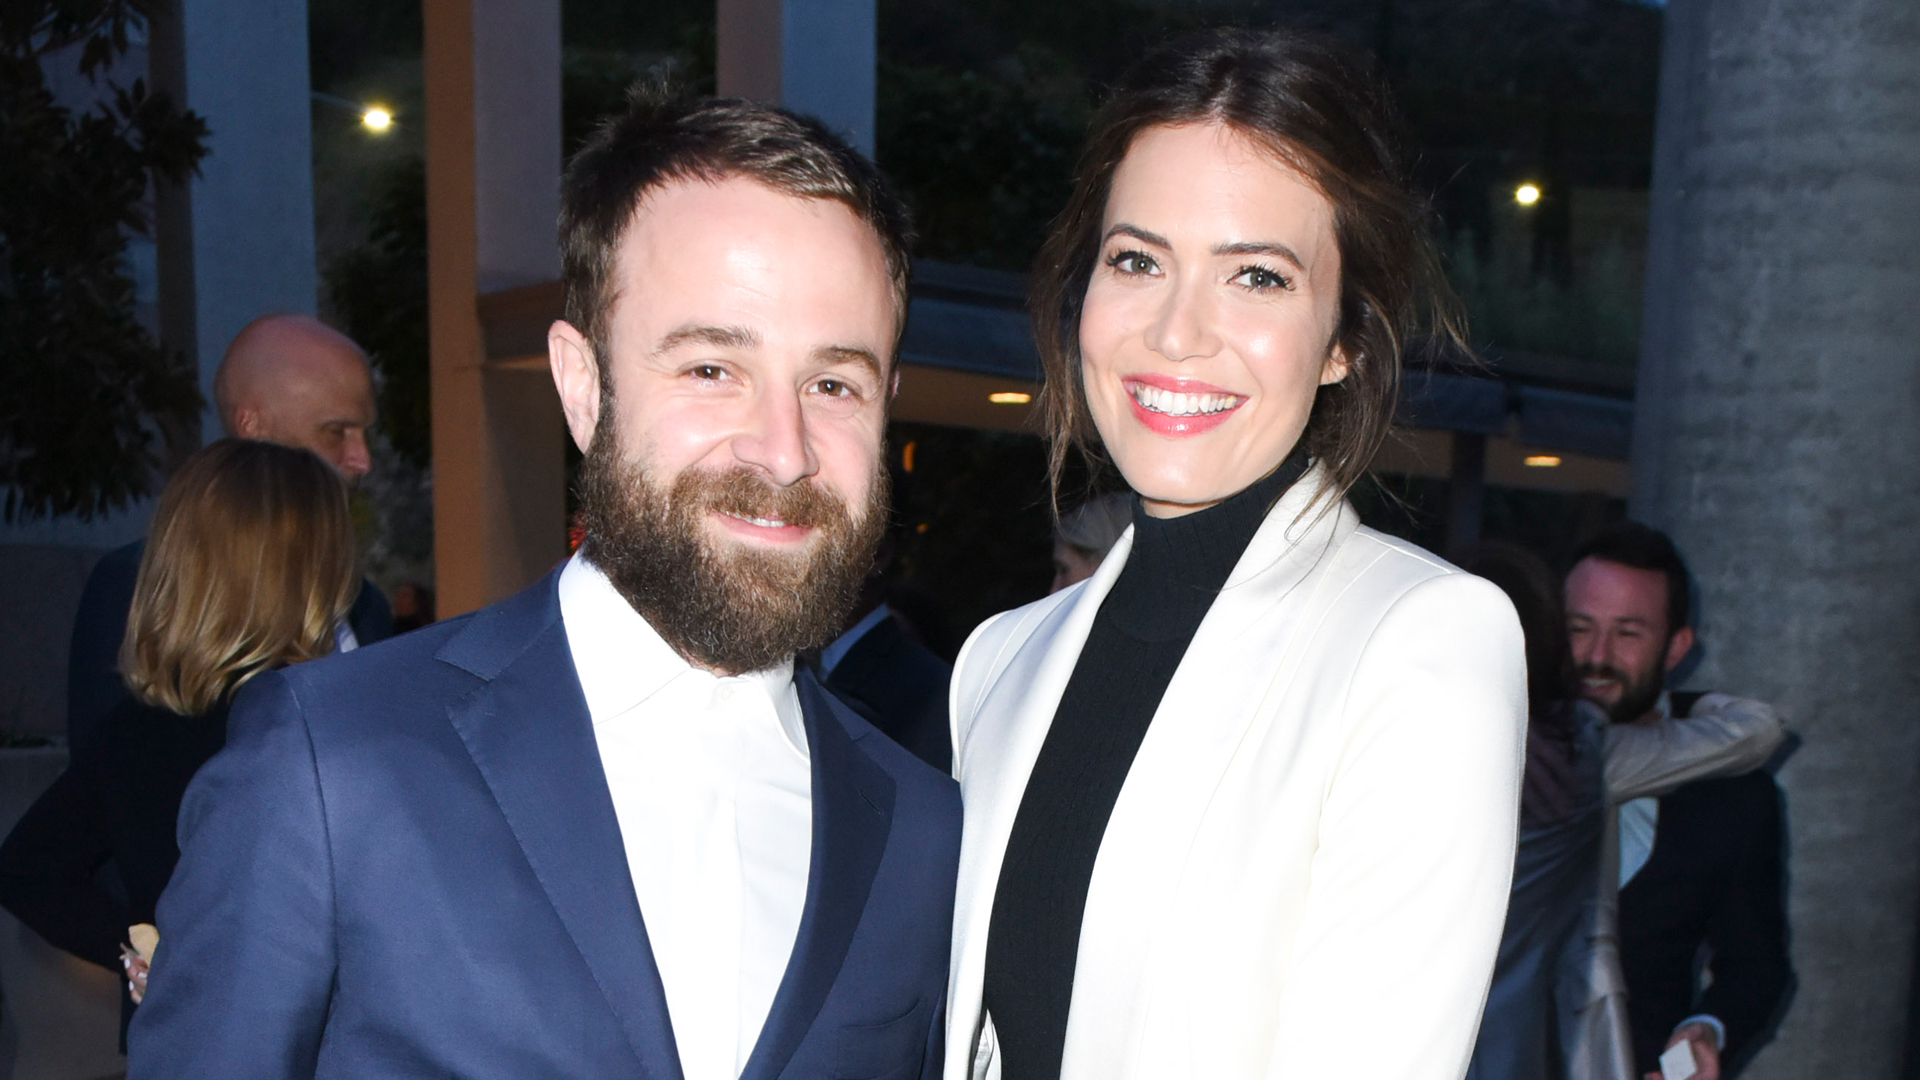 Mandy Moore is pregnant, expecting first child with husband Taylor Goldsmith